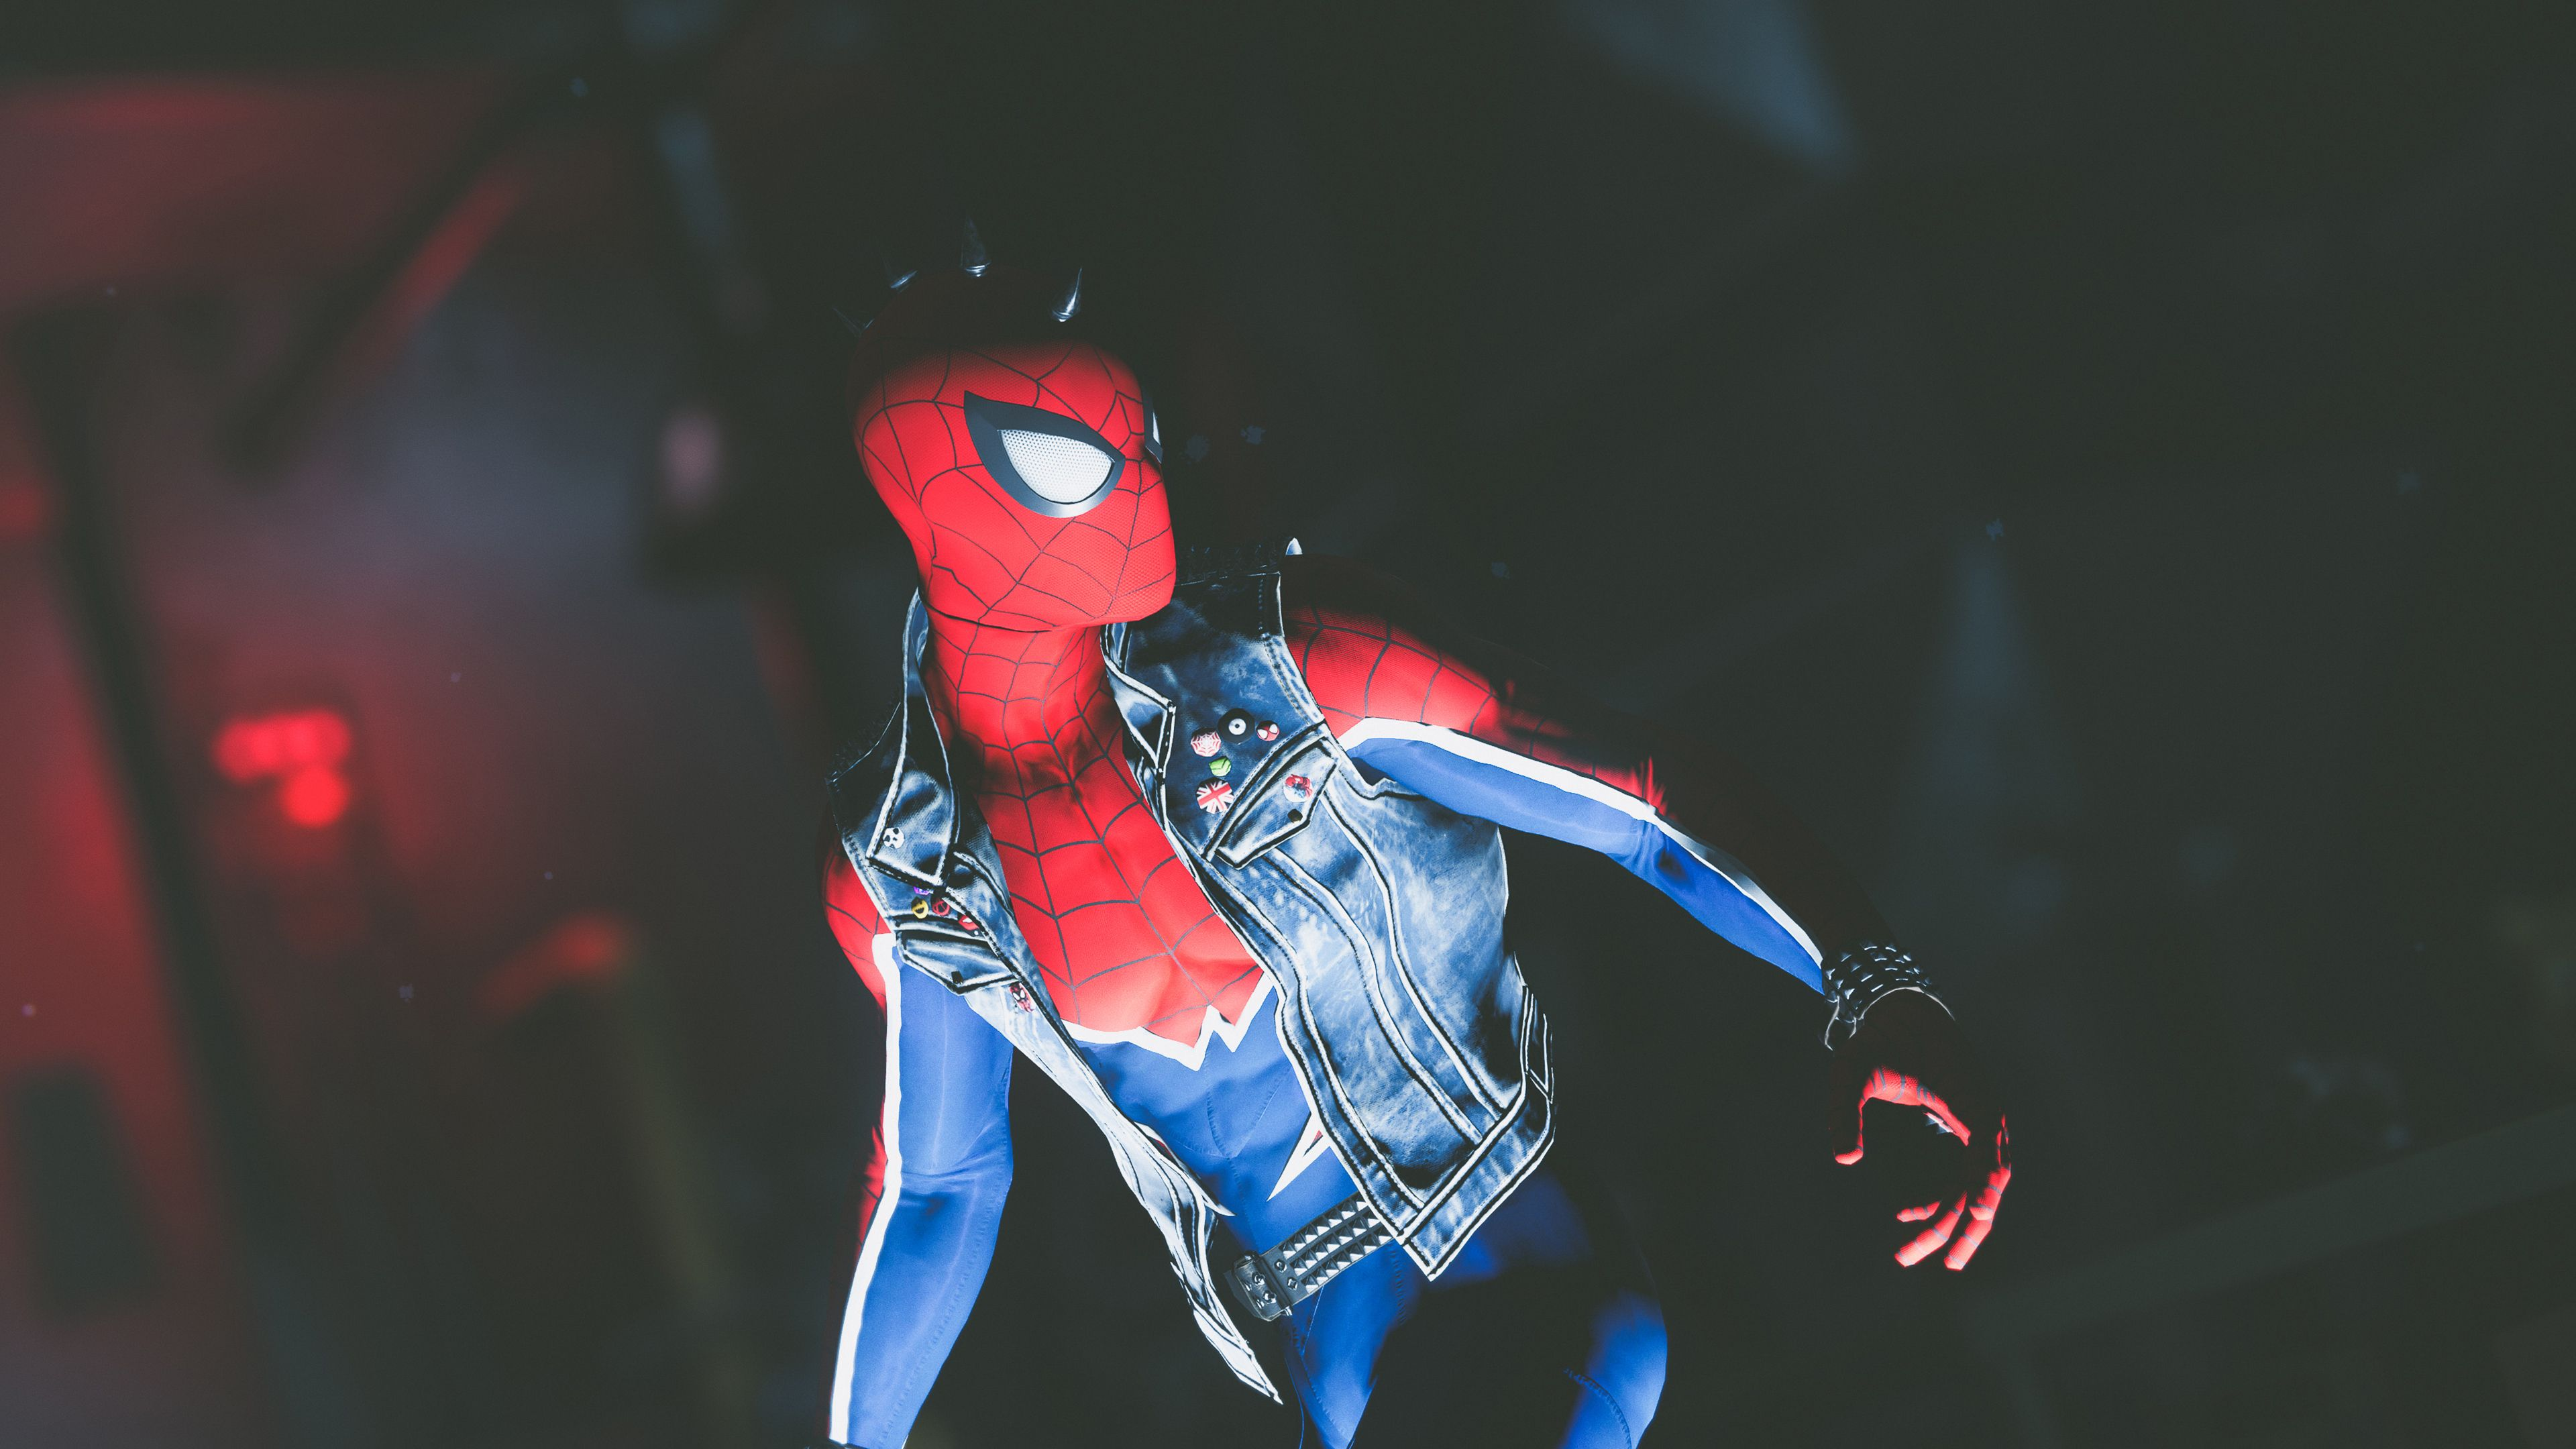 spider-man background